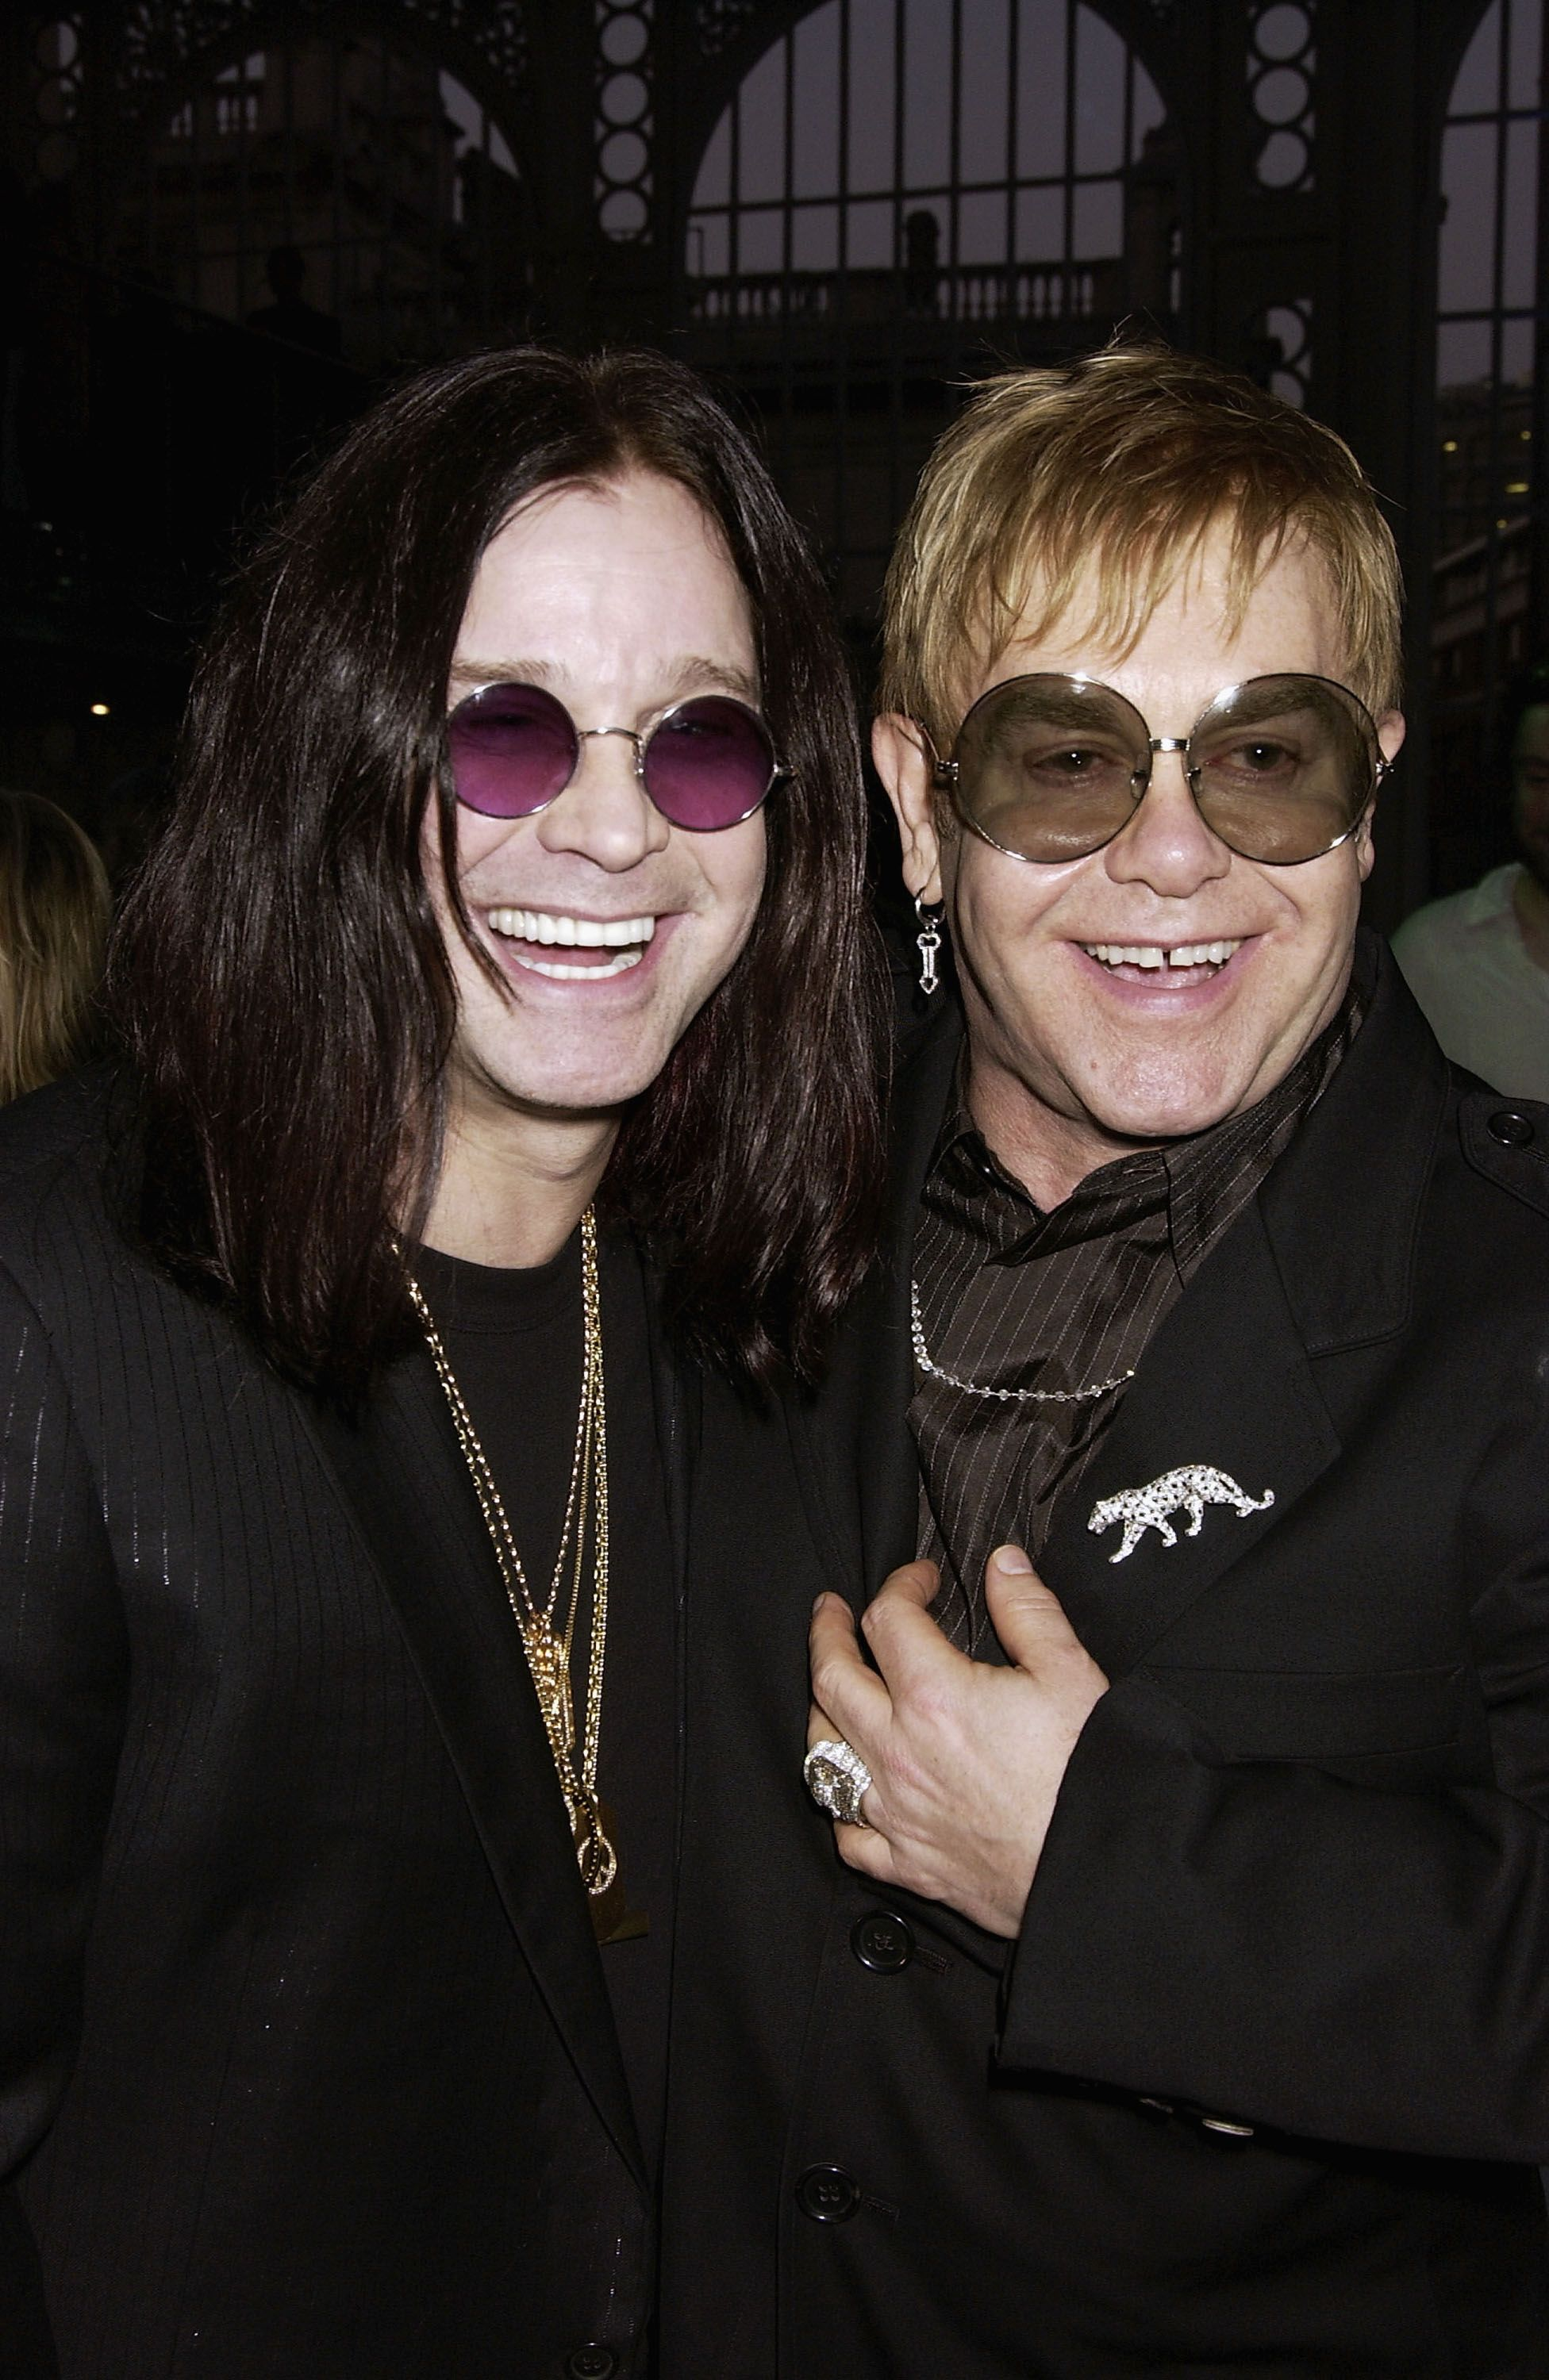 """Ozzy Osbourne and Elton John at the  """"GQ Men Of The Year Awards"""" afterparty on September 7, 2004, in London. 